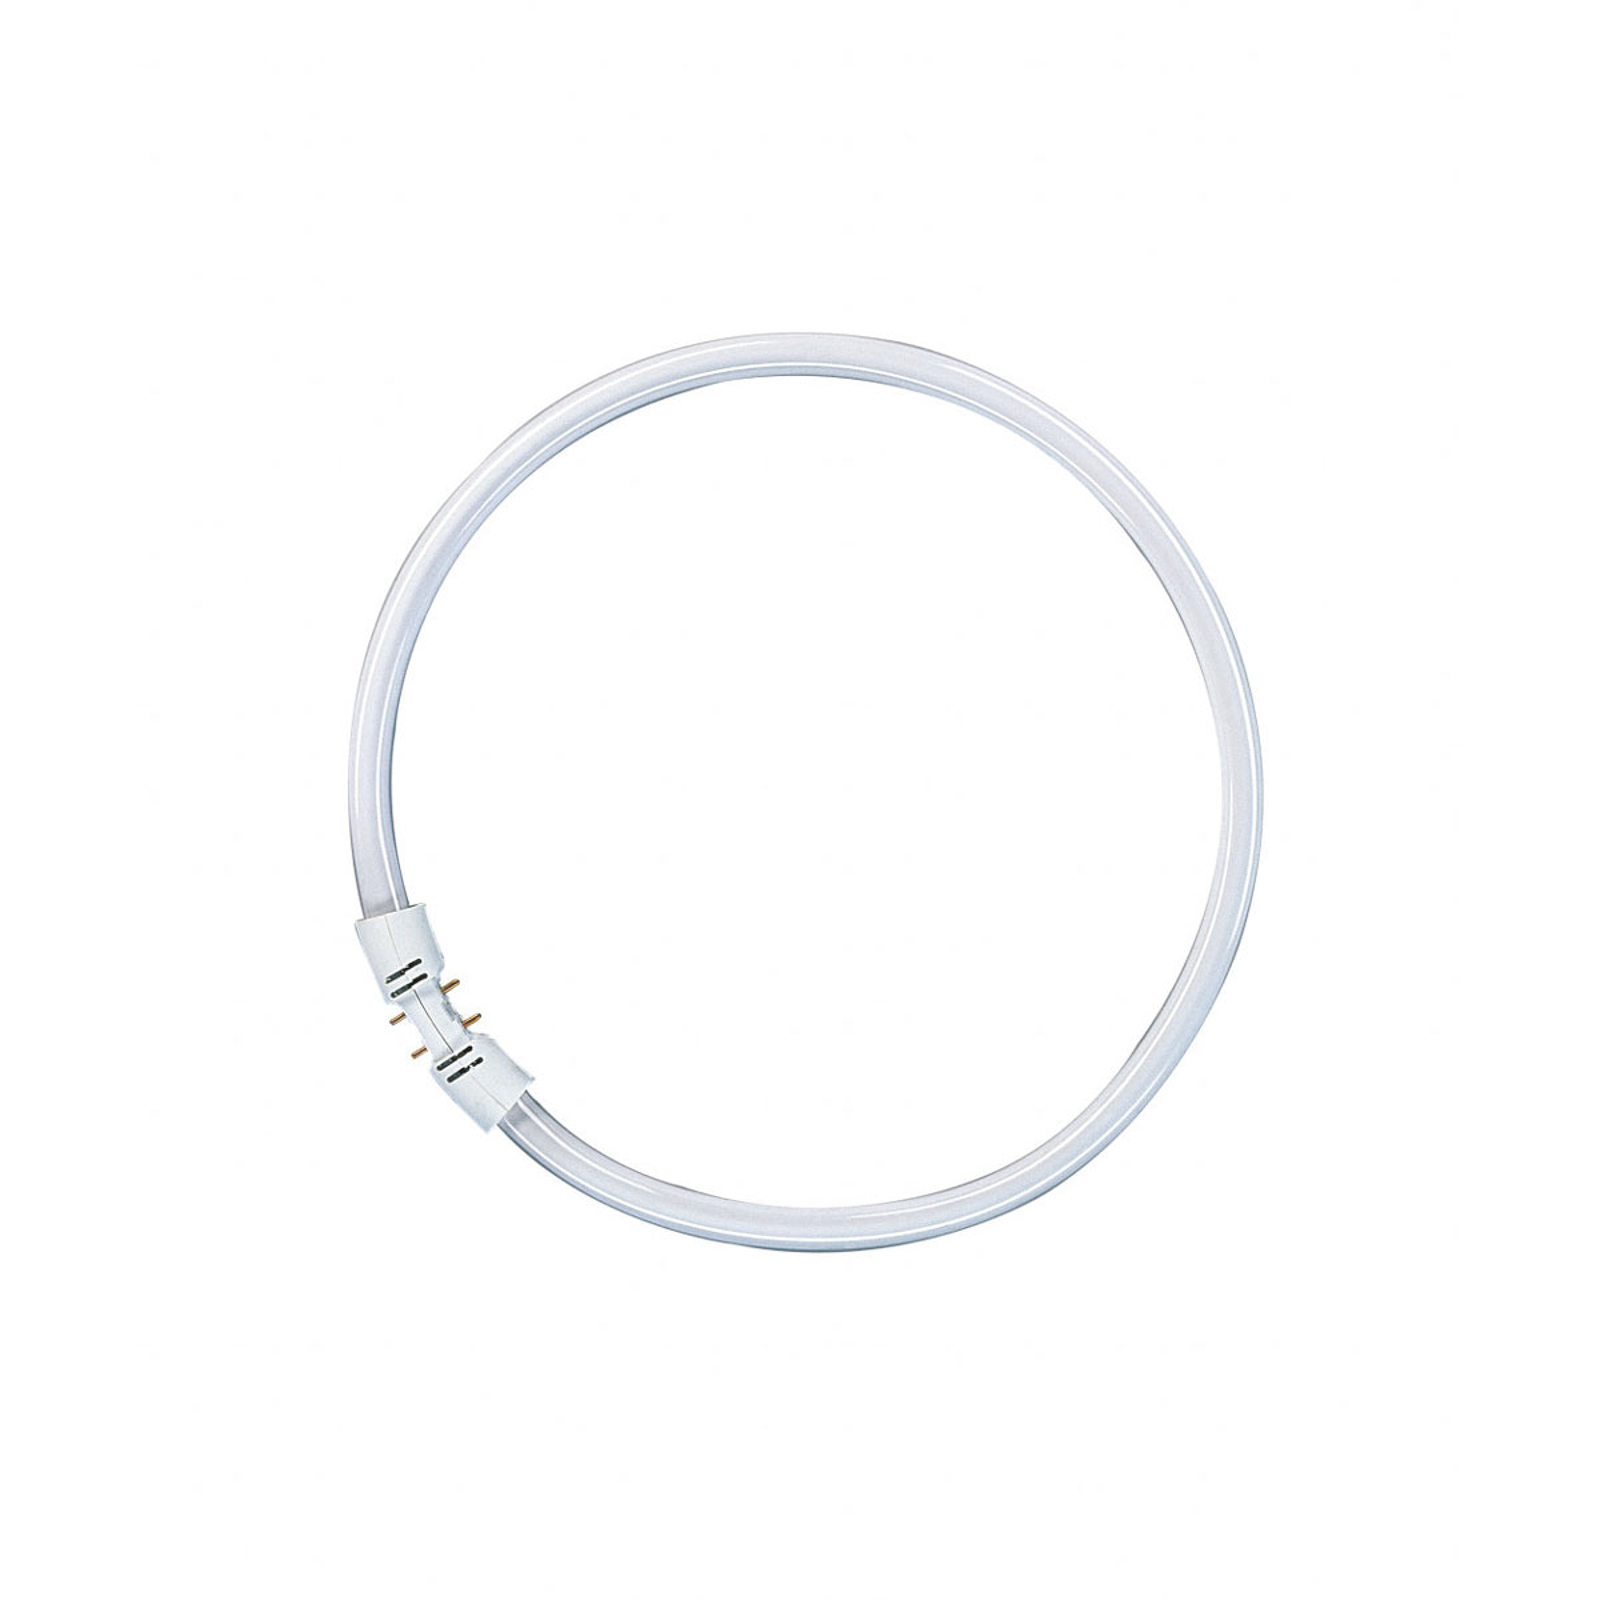 2Gx13 LUMILUX T5 Ring-Leuchtstofflampe 22W 830